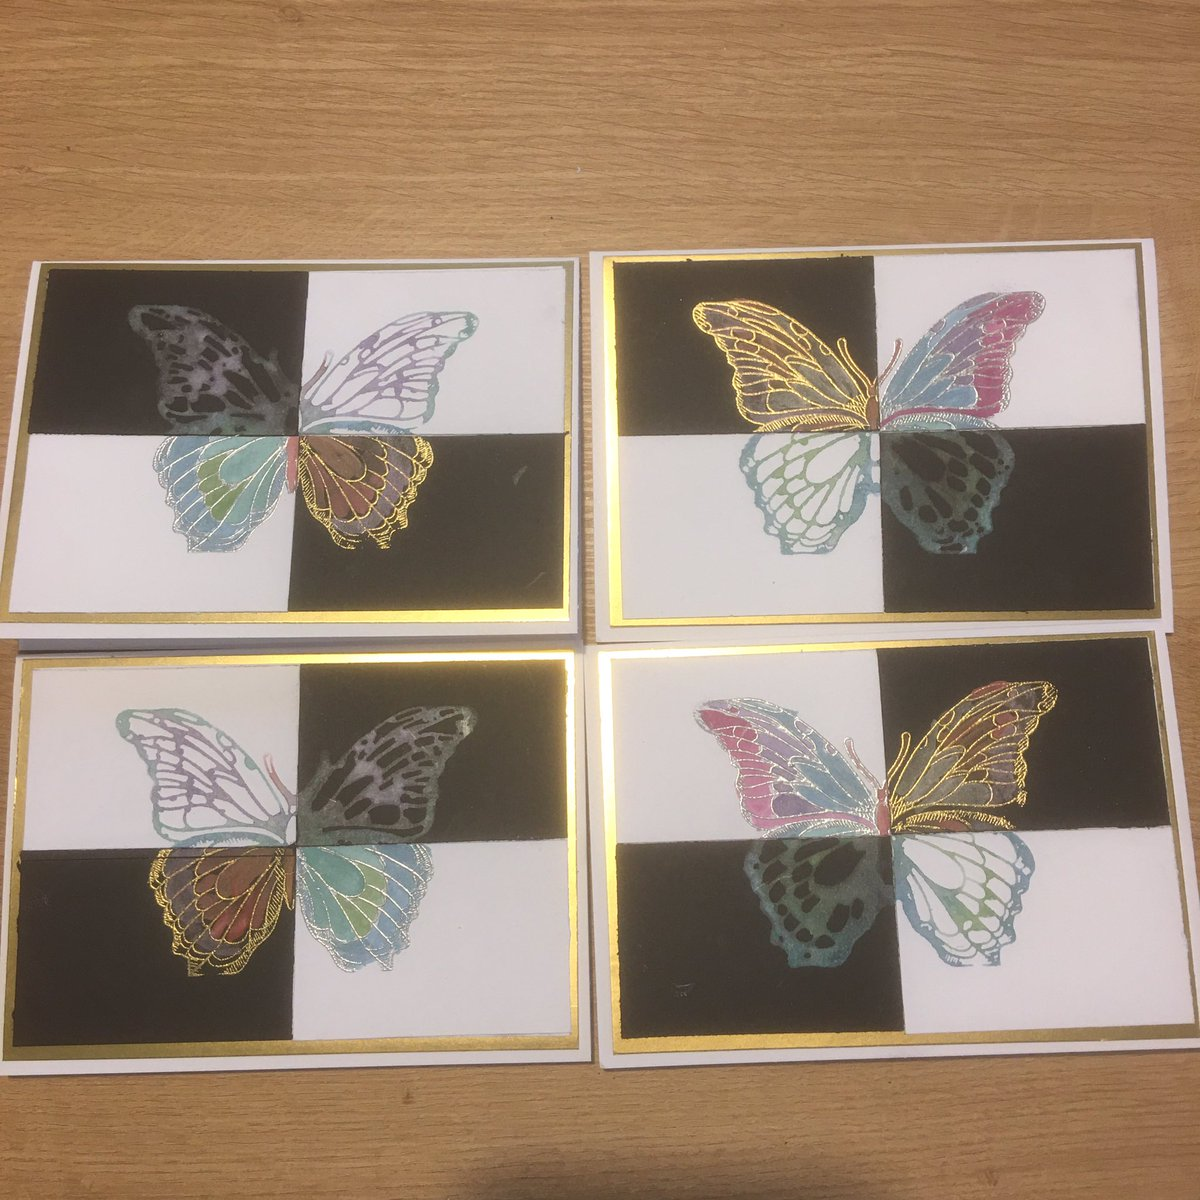 Day 26 of the Spectember challenge from @SpectrumNoir - Metallic  I stamped this @CraftersCompUK butterfly 4 times. Twice with metallic markers and twice heat embossed then coloured with metallic markers.  #spectember #crafting #handmade #cardmaking #crafturday #butterflies https://t.co/9YltYNshJF